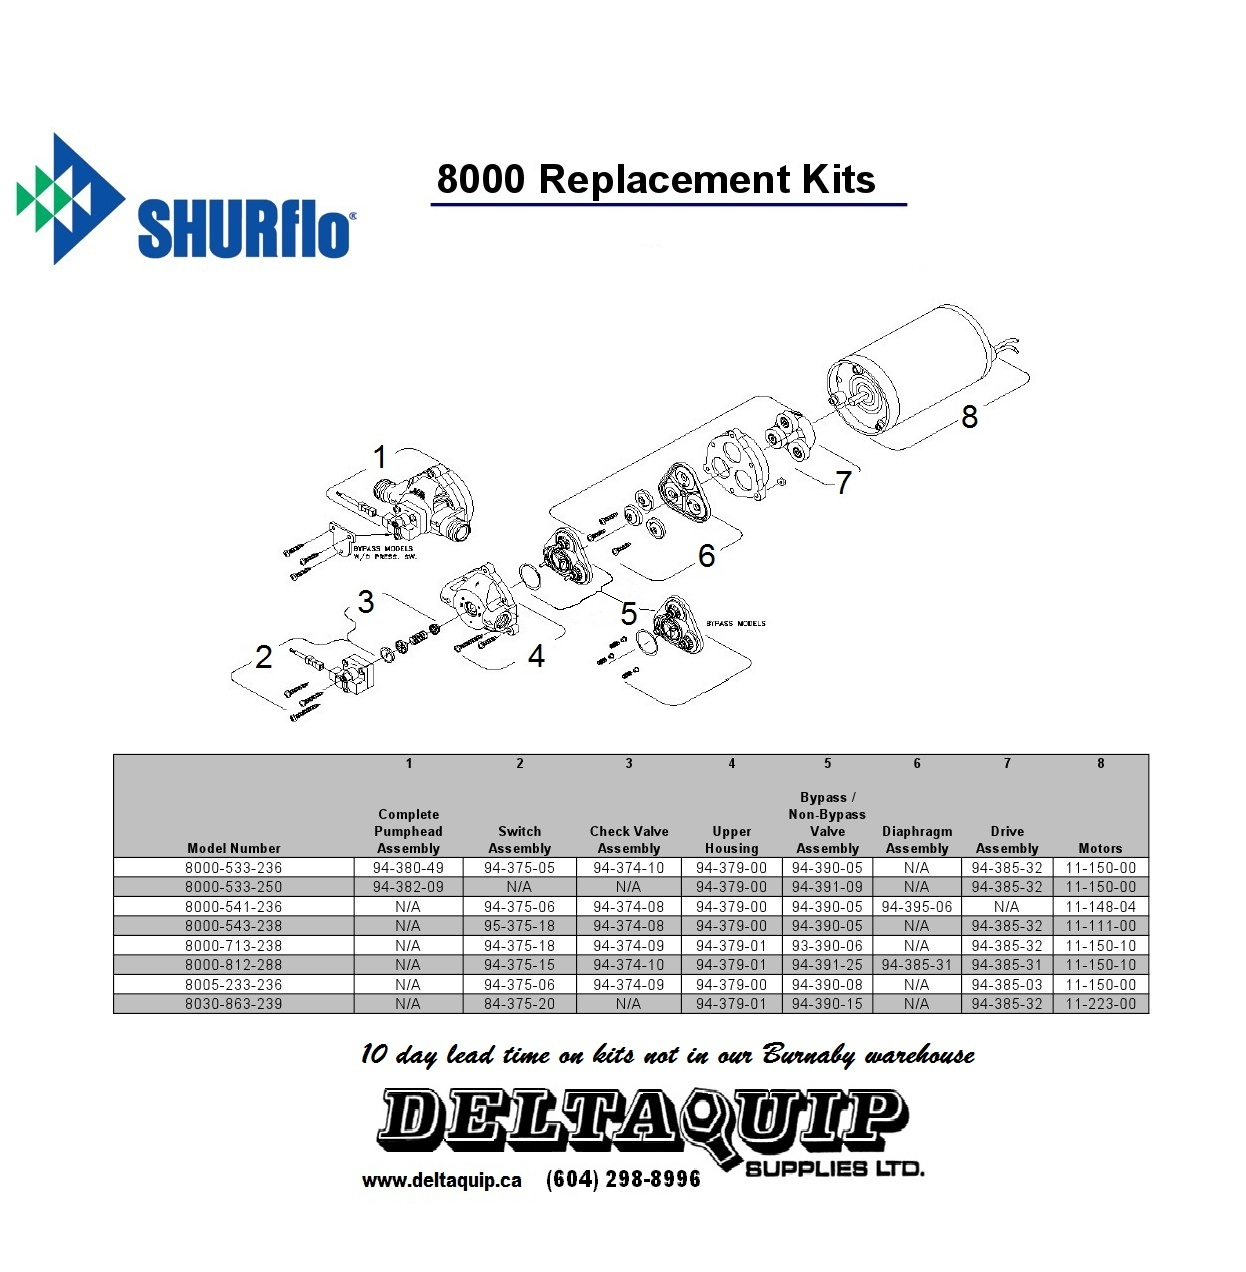 Shurflo Series Pumps Deltaquip Supplies Ltd